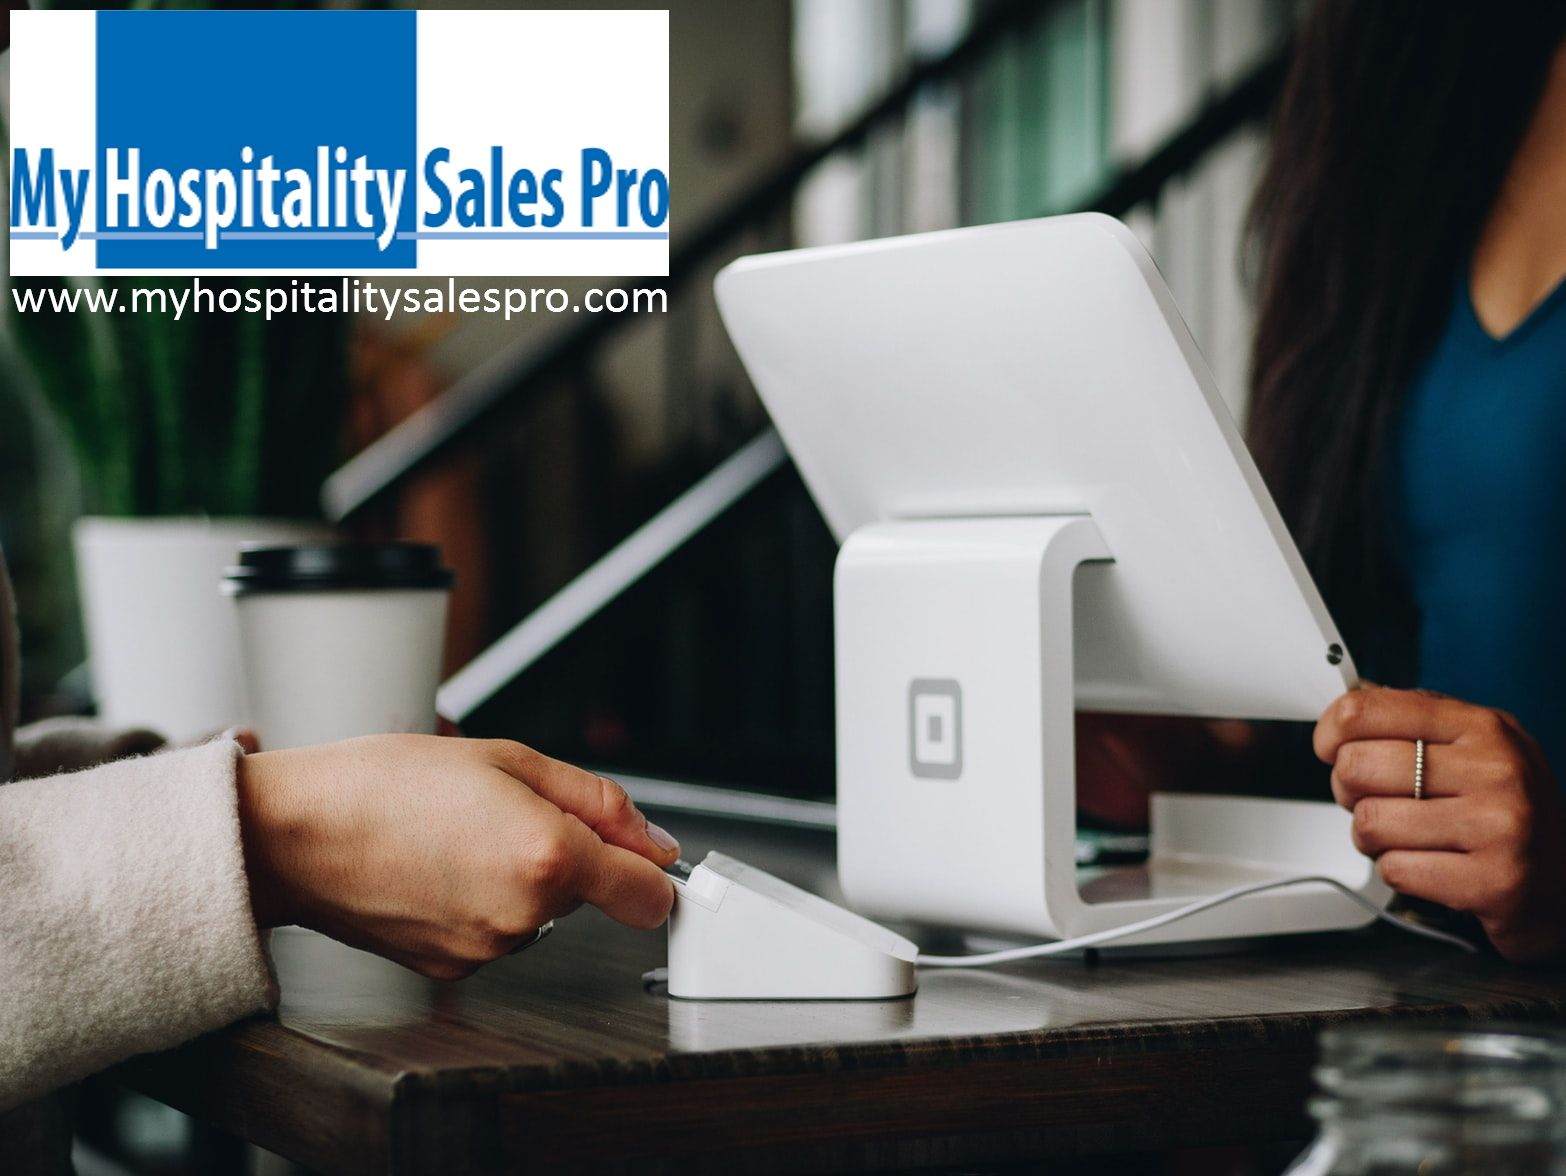 Hotel sales blitz is a planned effort of the company to get all the sales force into one place to reach the goal. The critical task is to recognize and succeed in engaging new customers. #HotelSalesBlitz, #HotelSales, #HotelSale